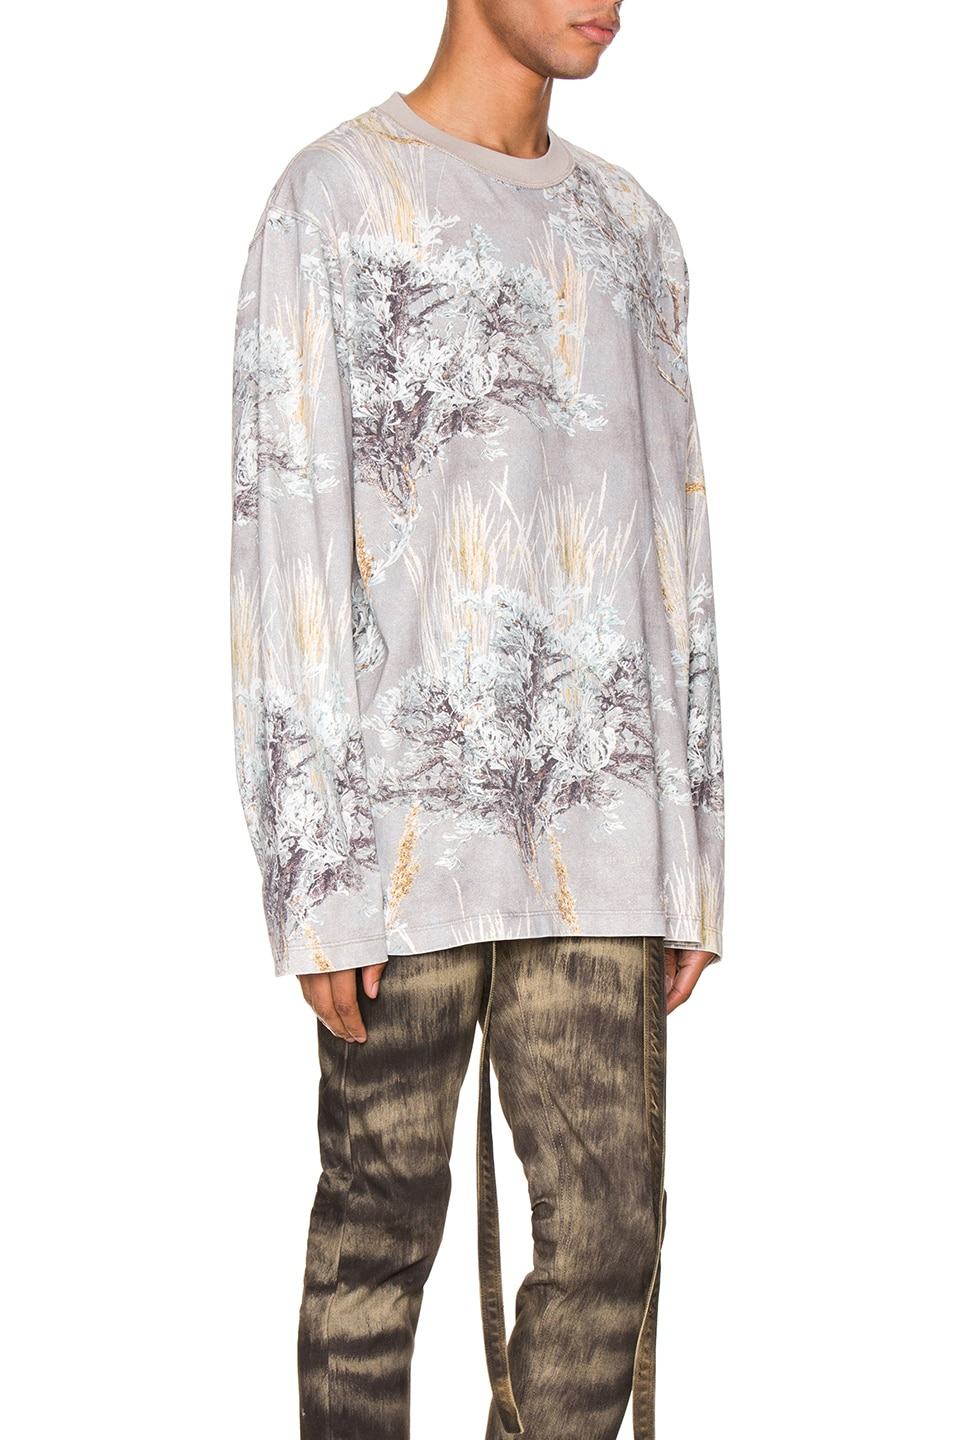 Image 2 of Fear of God Printed Long Sleeve Tee in Prarie Ghost Camo